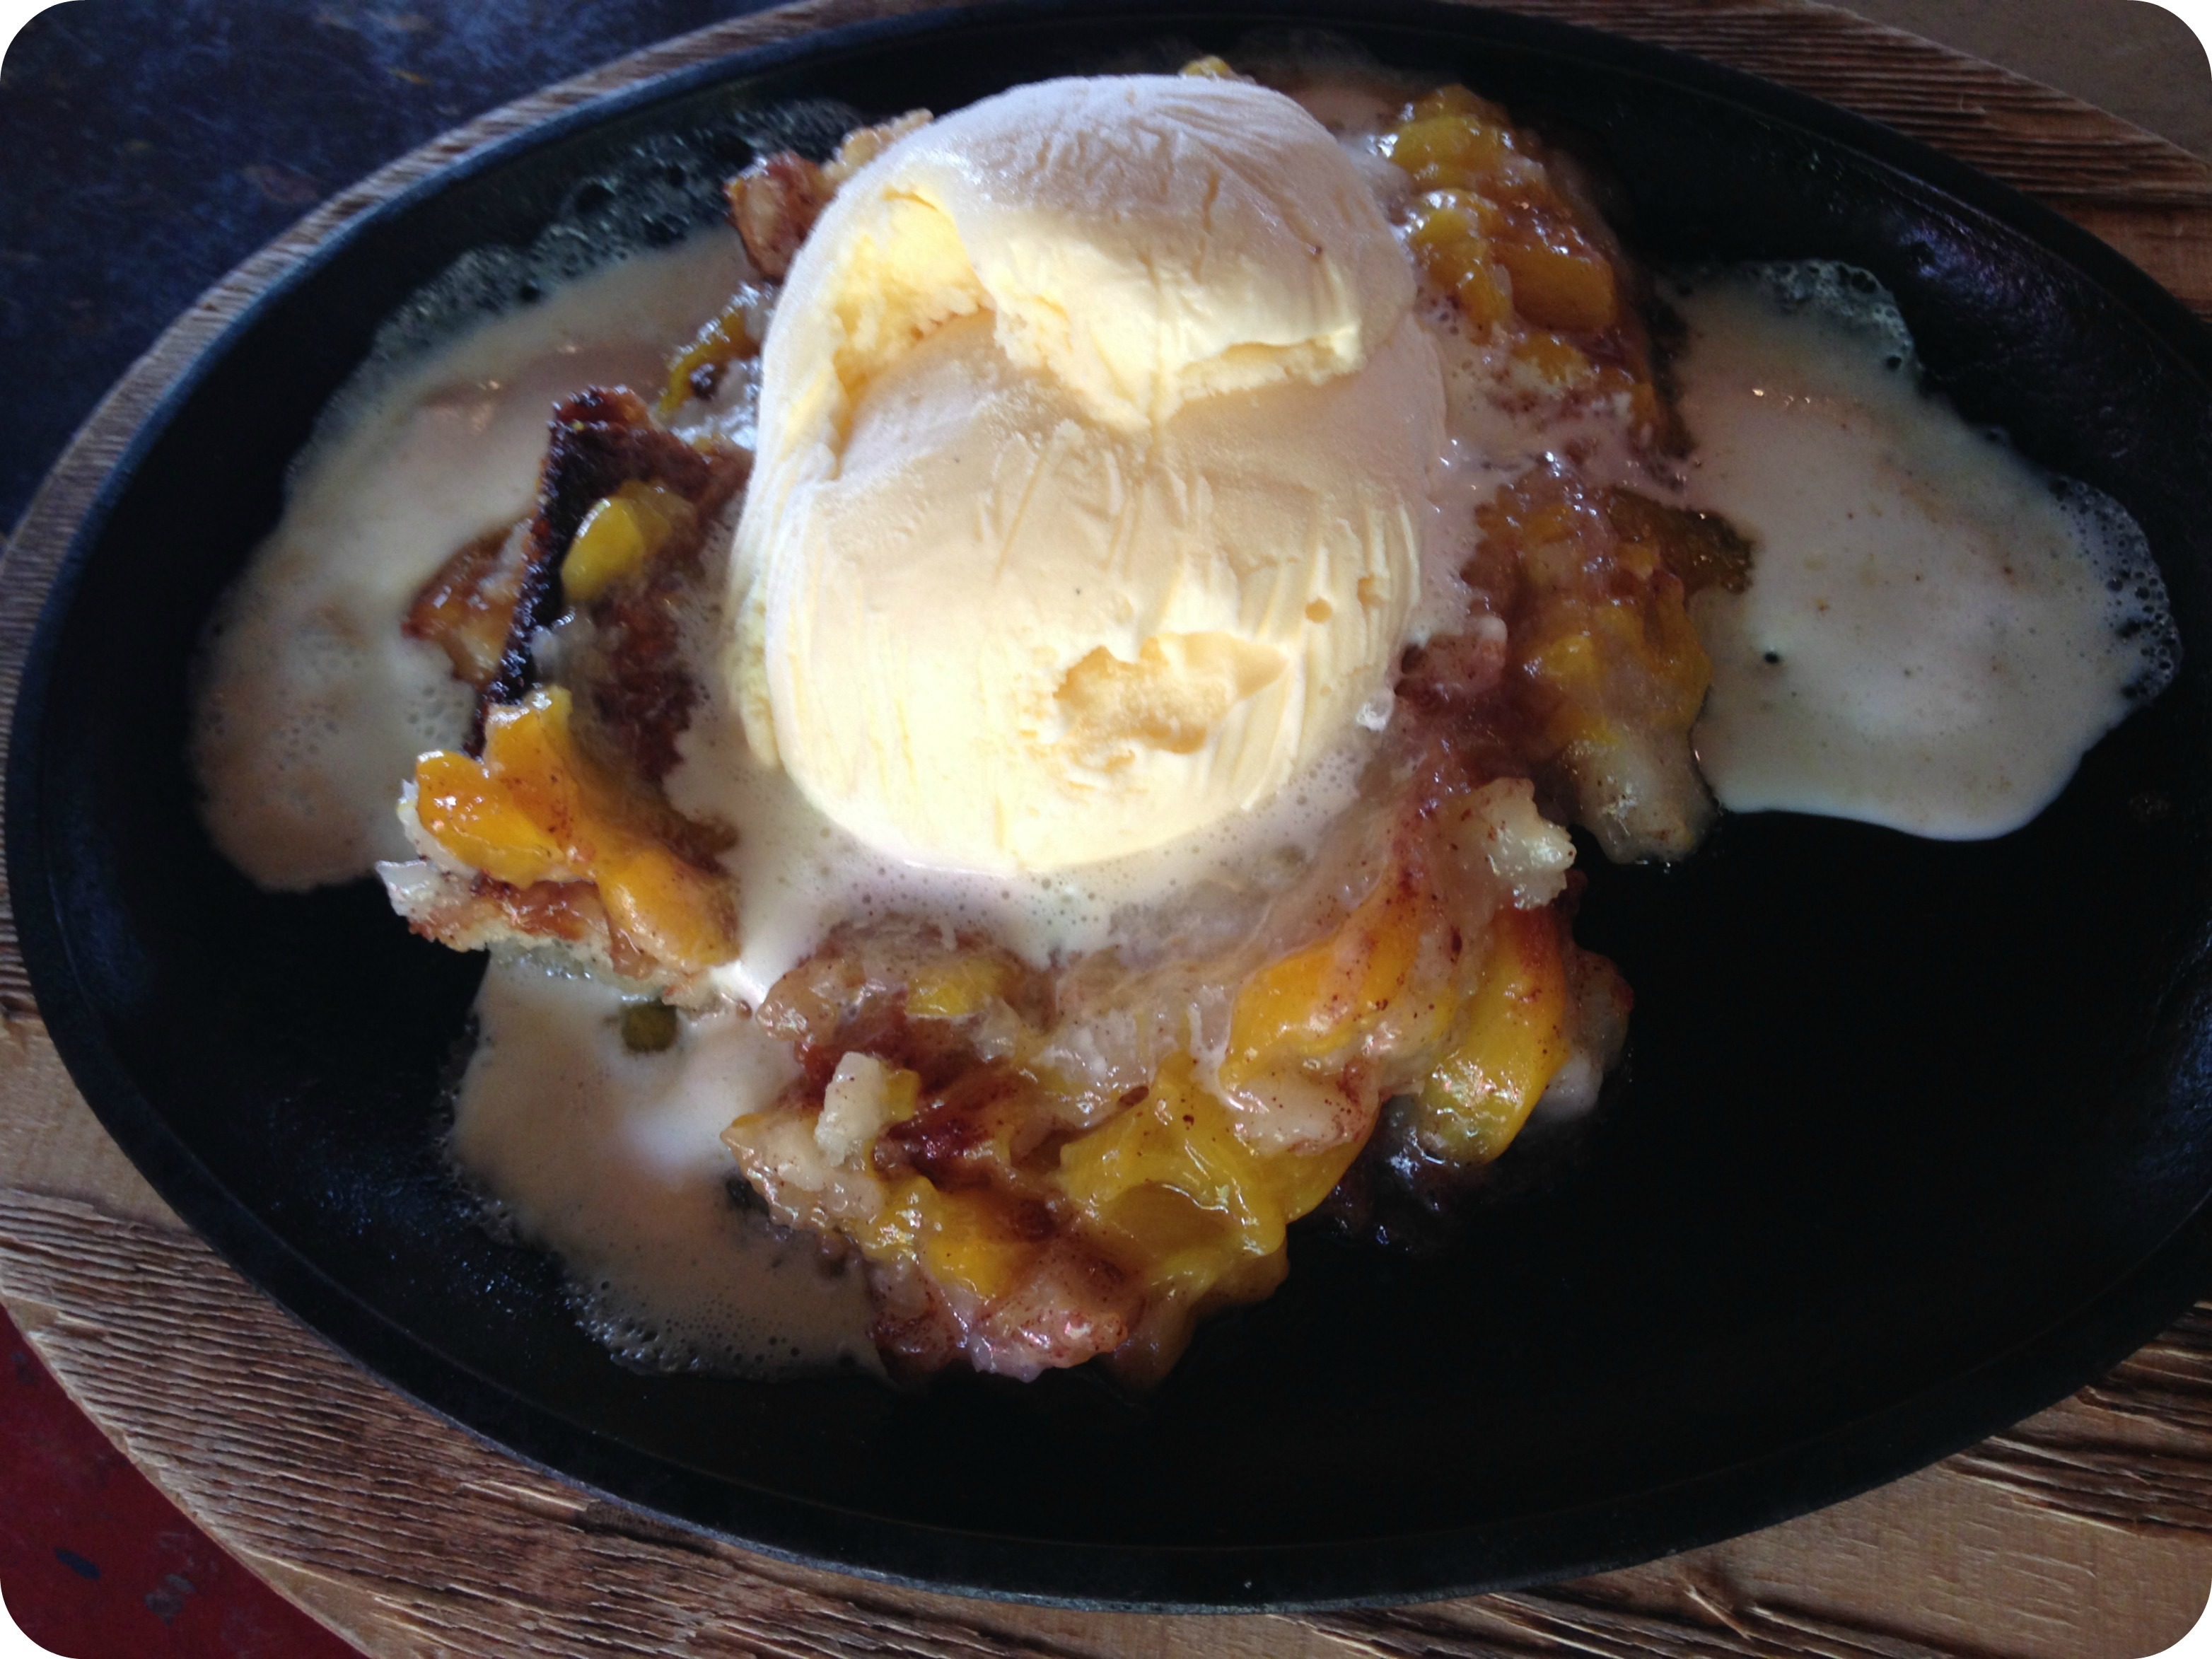 Willie's Peach Cobbler